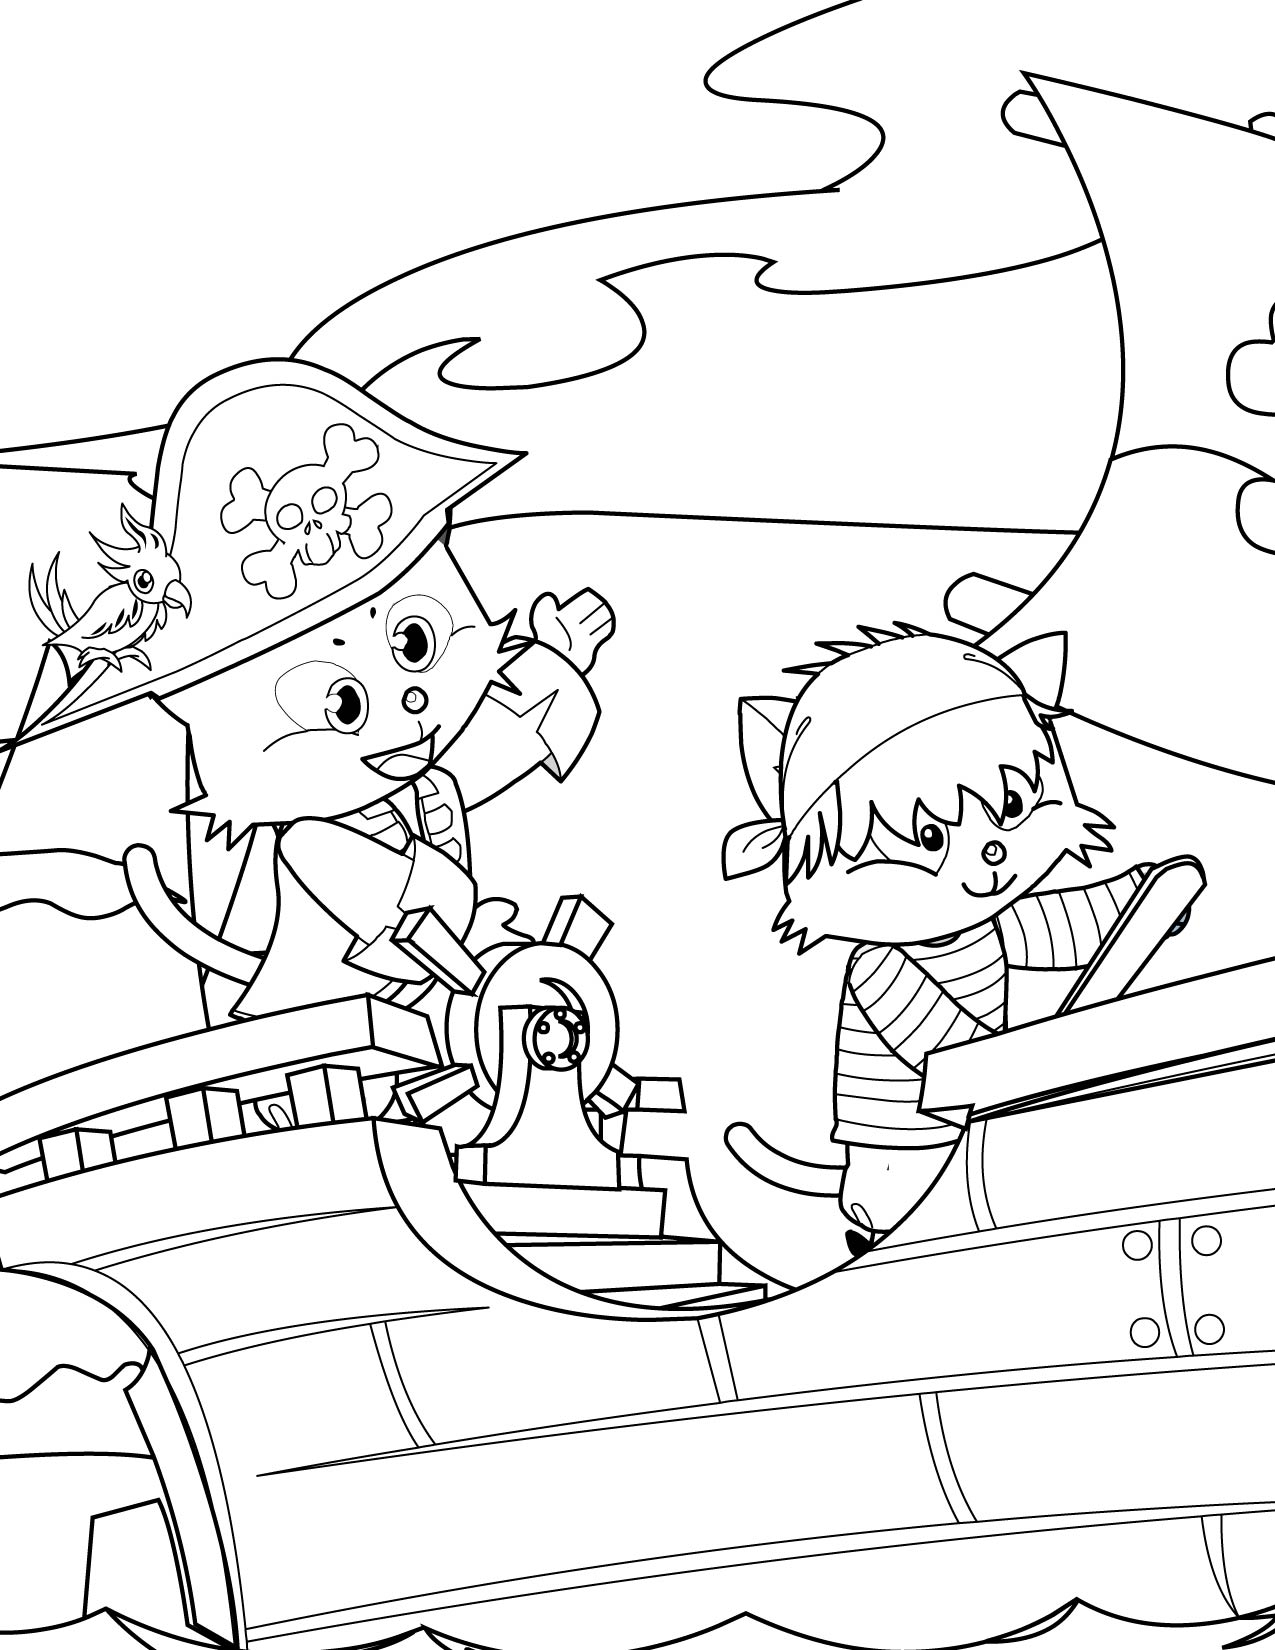 pirate coloring pages for kids printable pirate coloring pages to download and print for free for coloring pages kids printable pirate